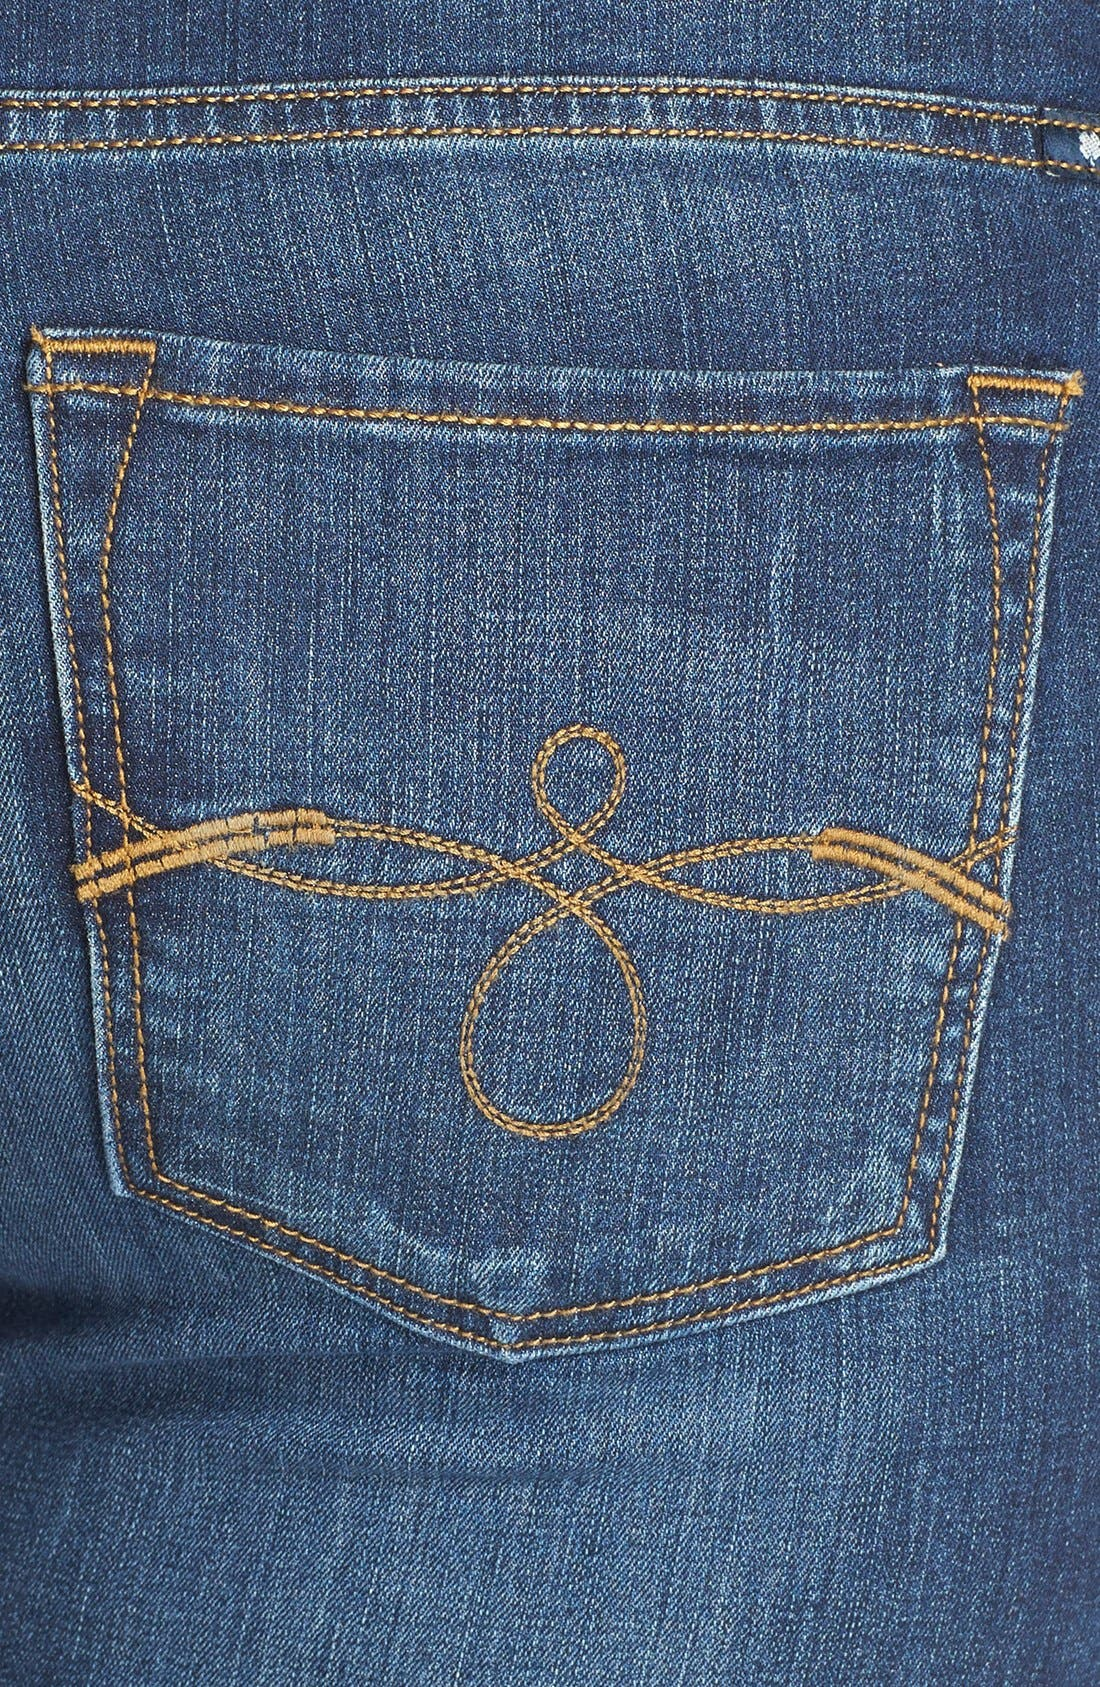 Ginger Bootcut Jeans,                             Alternate thumbnail 4, color,                             Amazonite